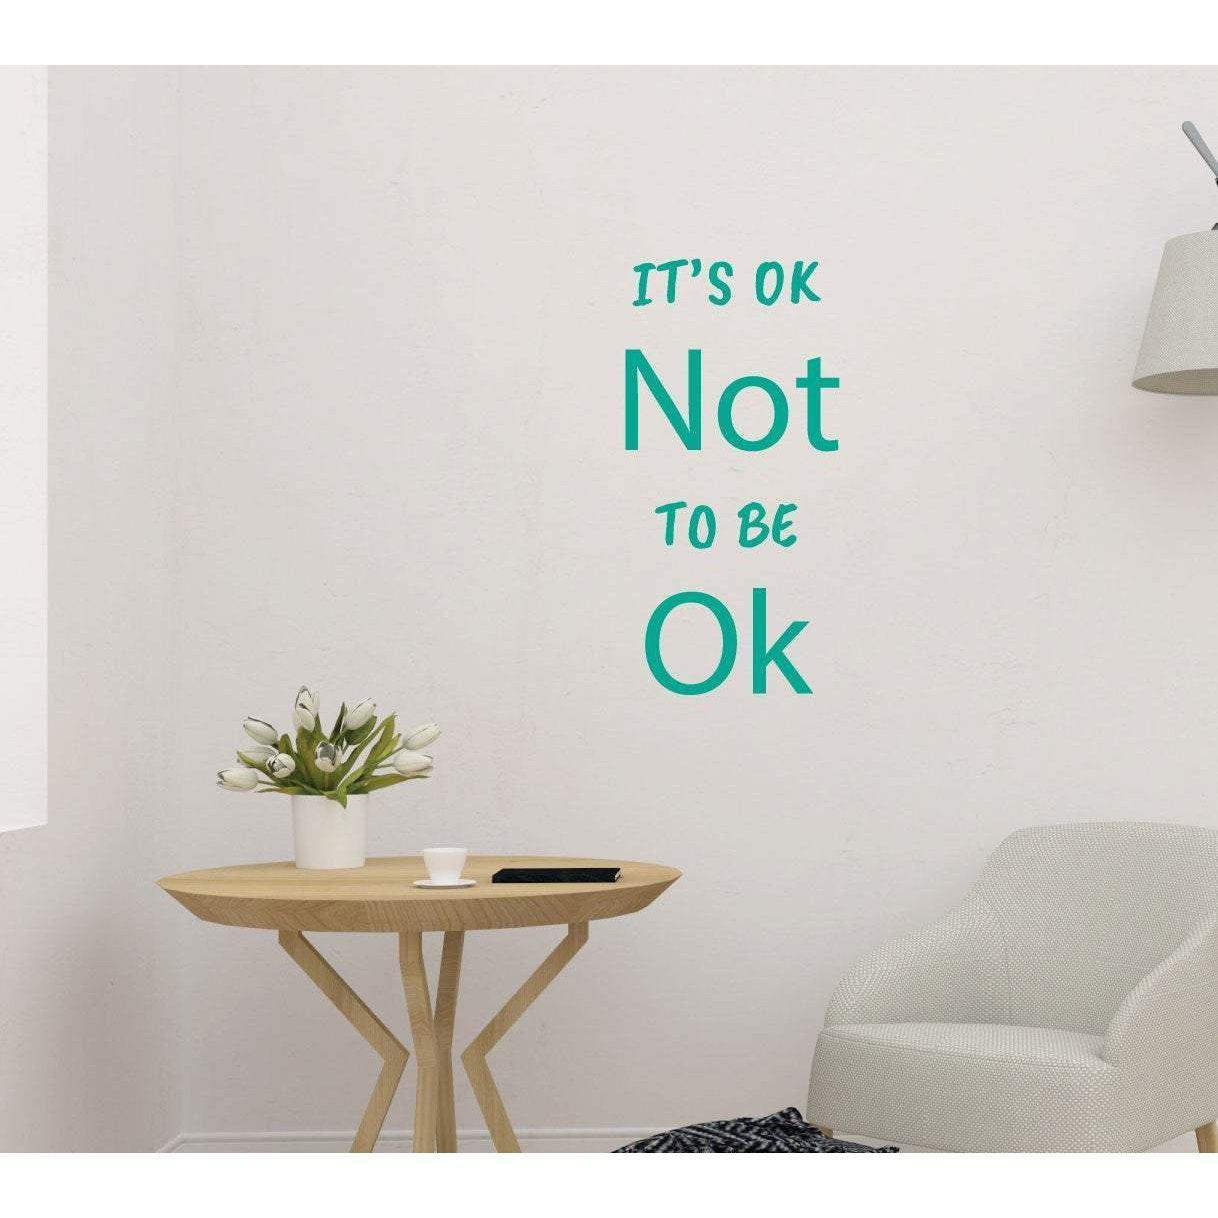 It's Ok Not To Be Ok Motivational Mental Health Wall Sticker Quote